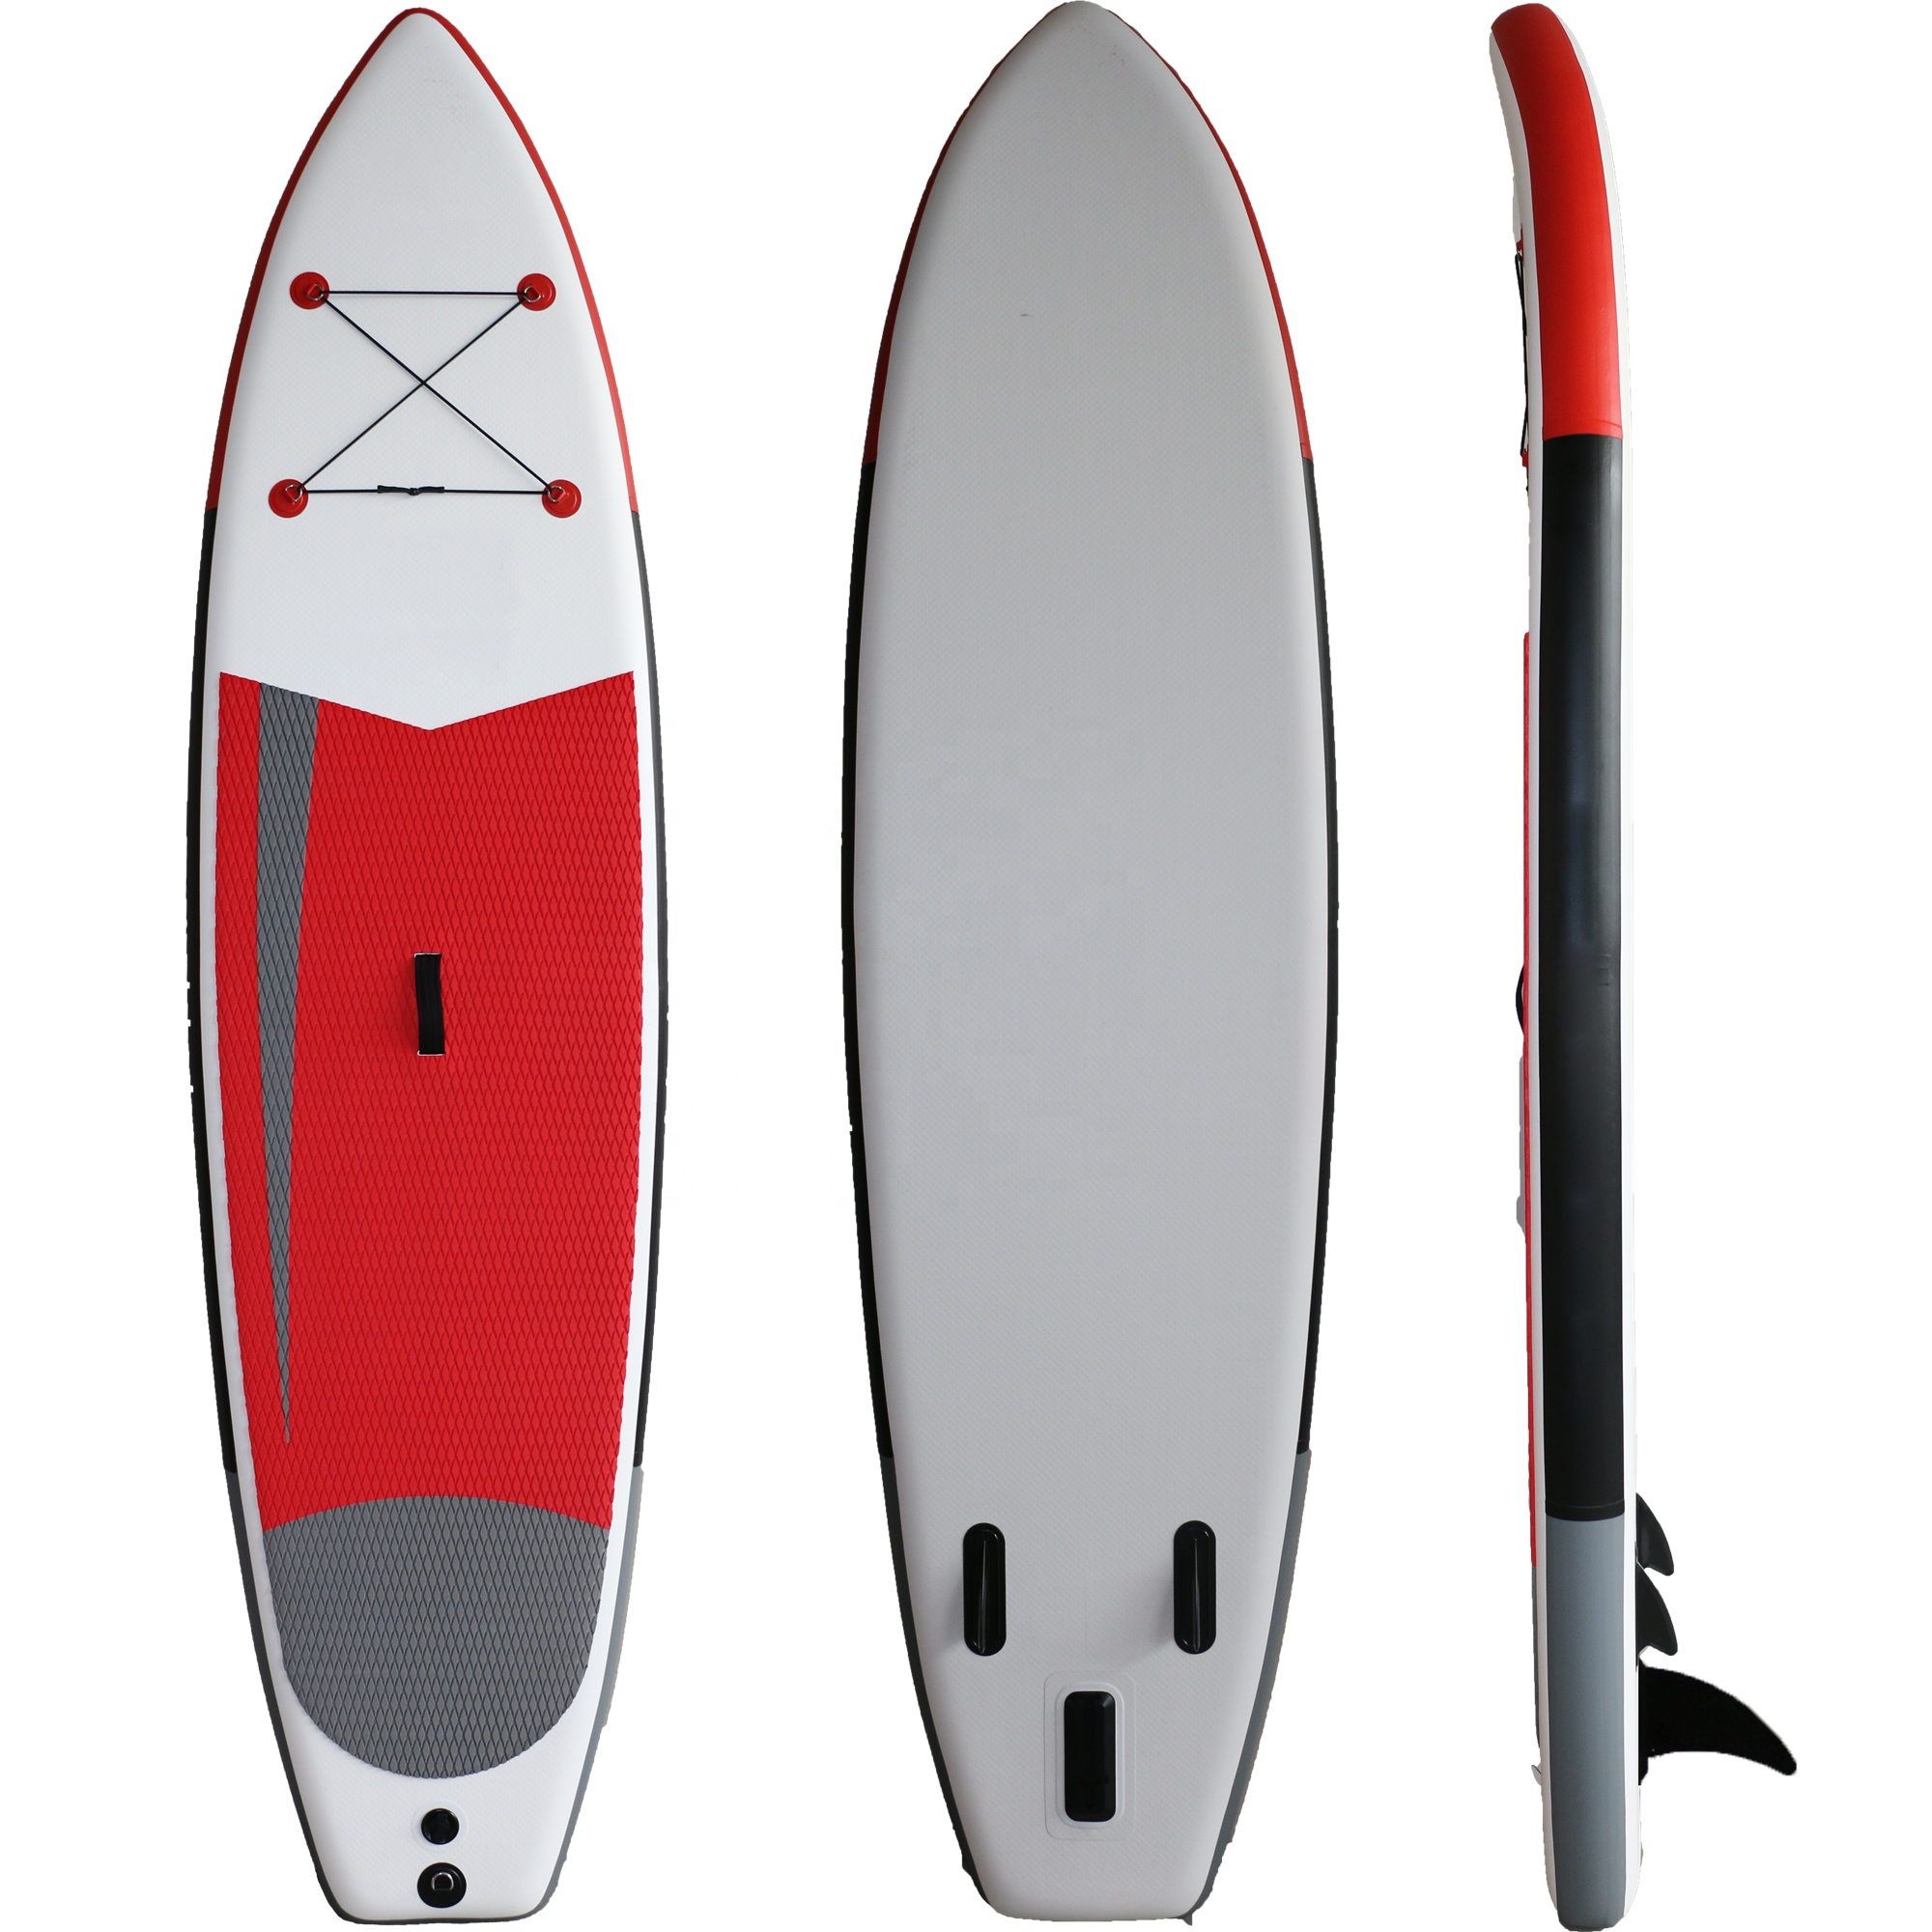 XUDREX 10ft Inflatable SUP Board